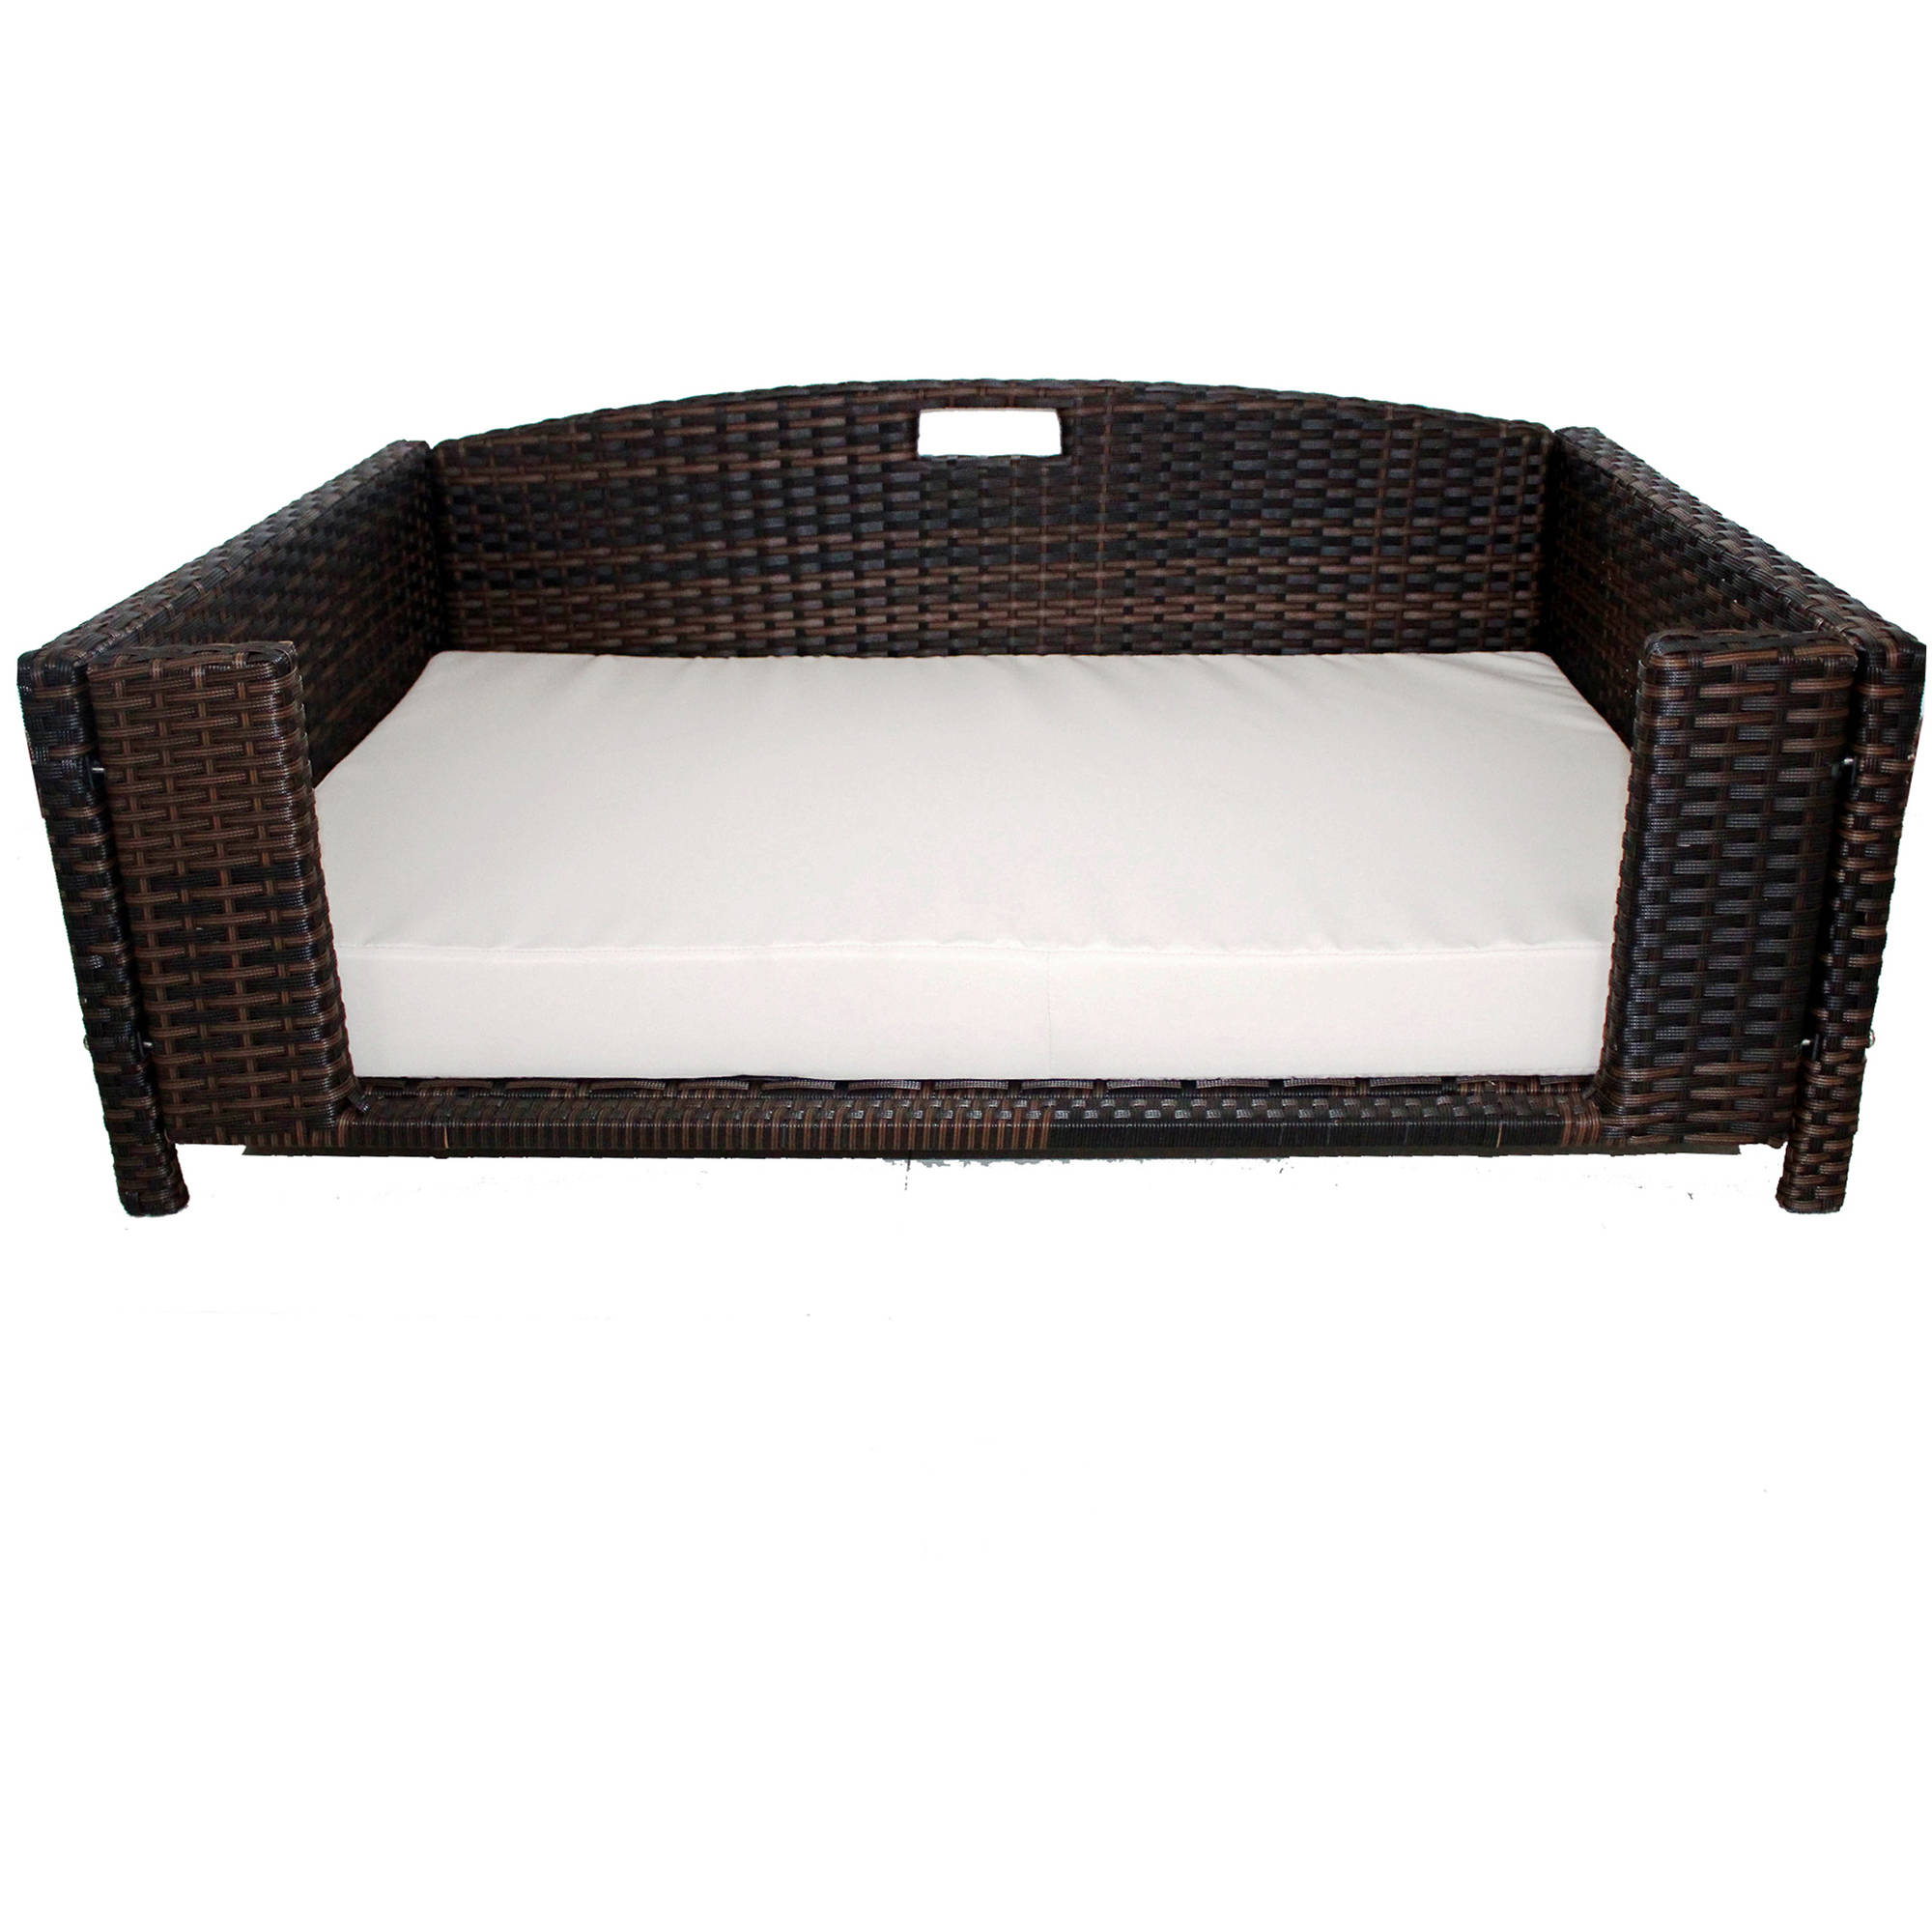 Iconic Pet Rectangular Elevated Rattan/ Wicker Pet Furniture for Dogs / Cats